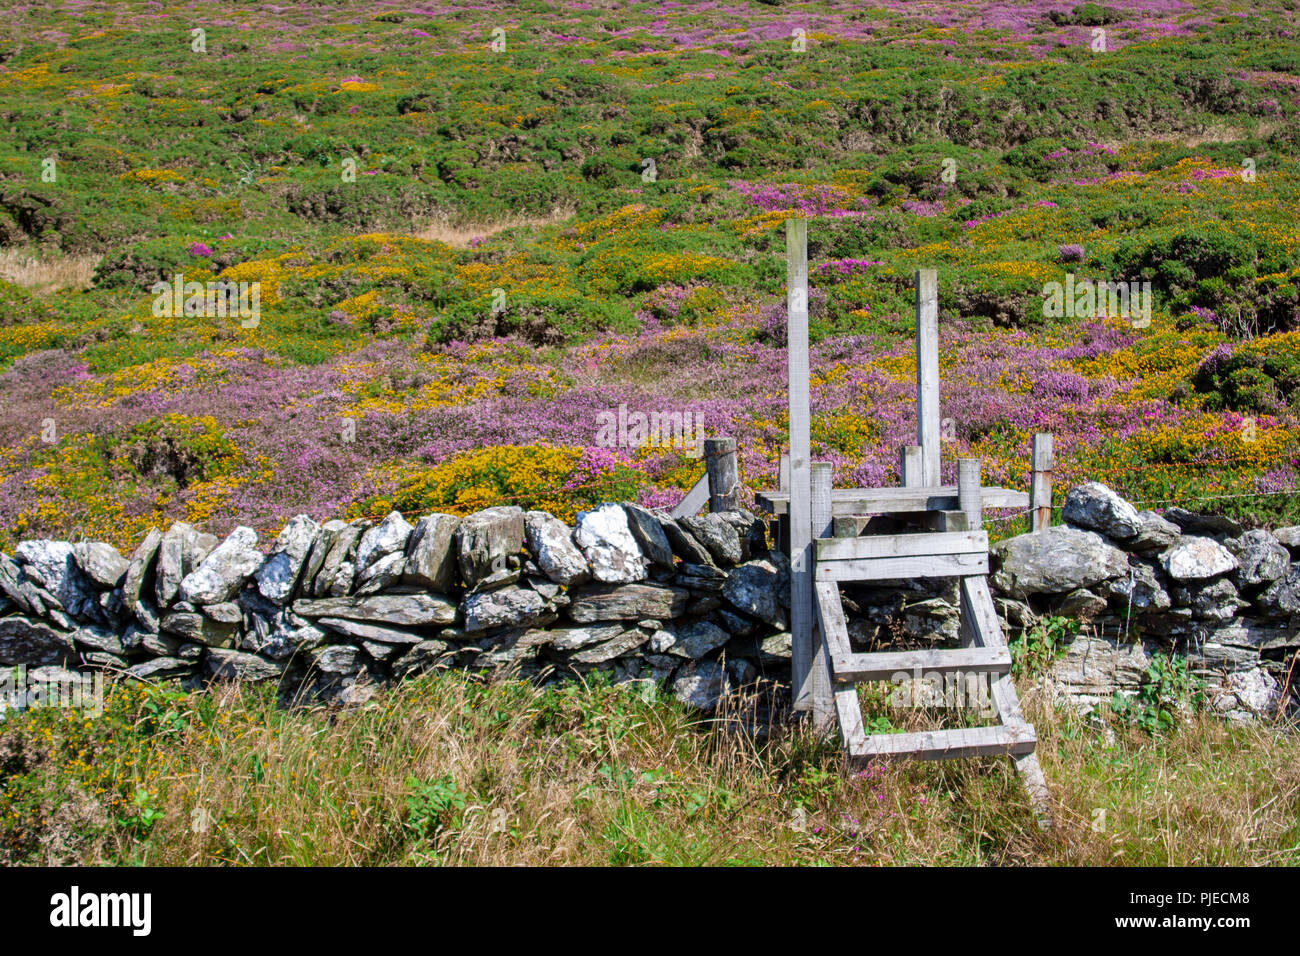 A simple wooden stile over a dry stone wall allows walkers access to the unspoilt heather and furze strewn highland hills. Heaven on earth. - Stock Image